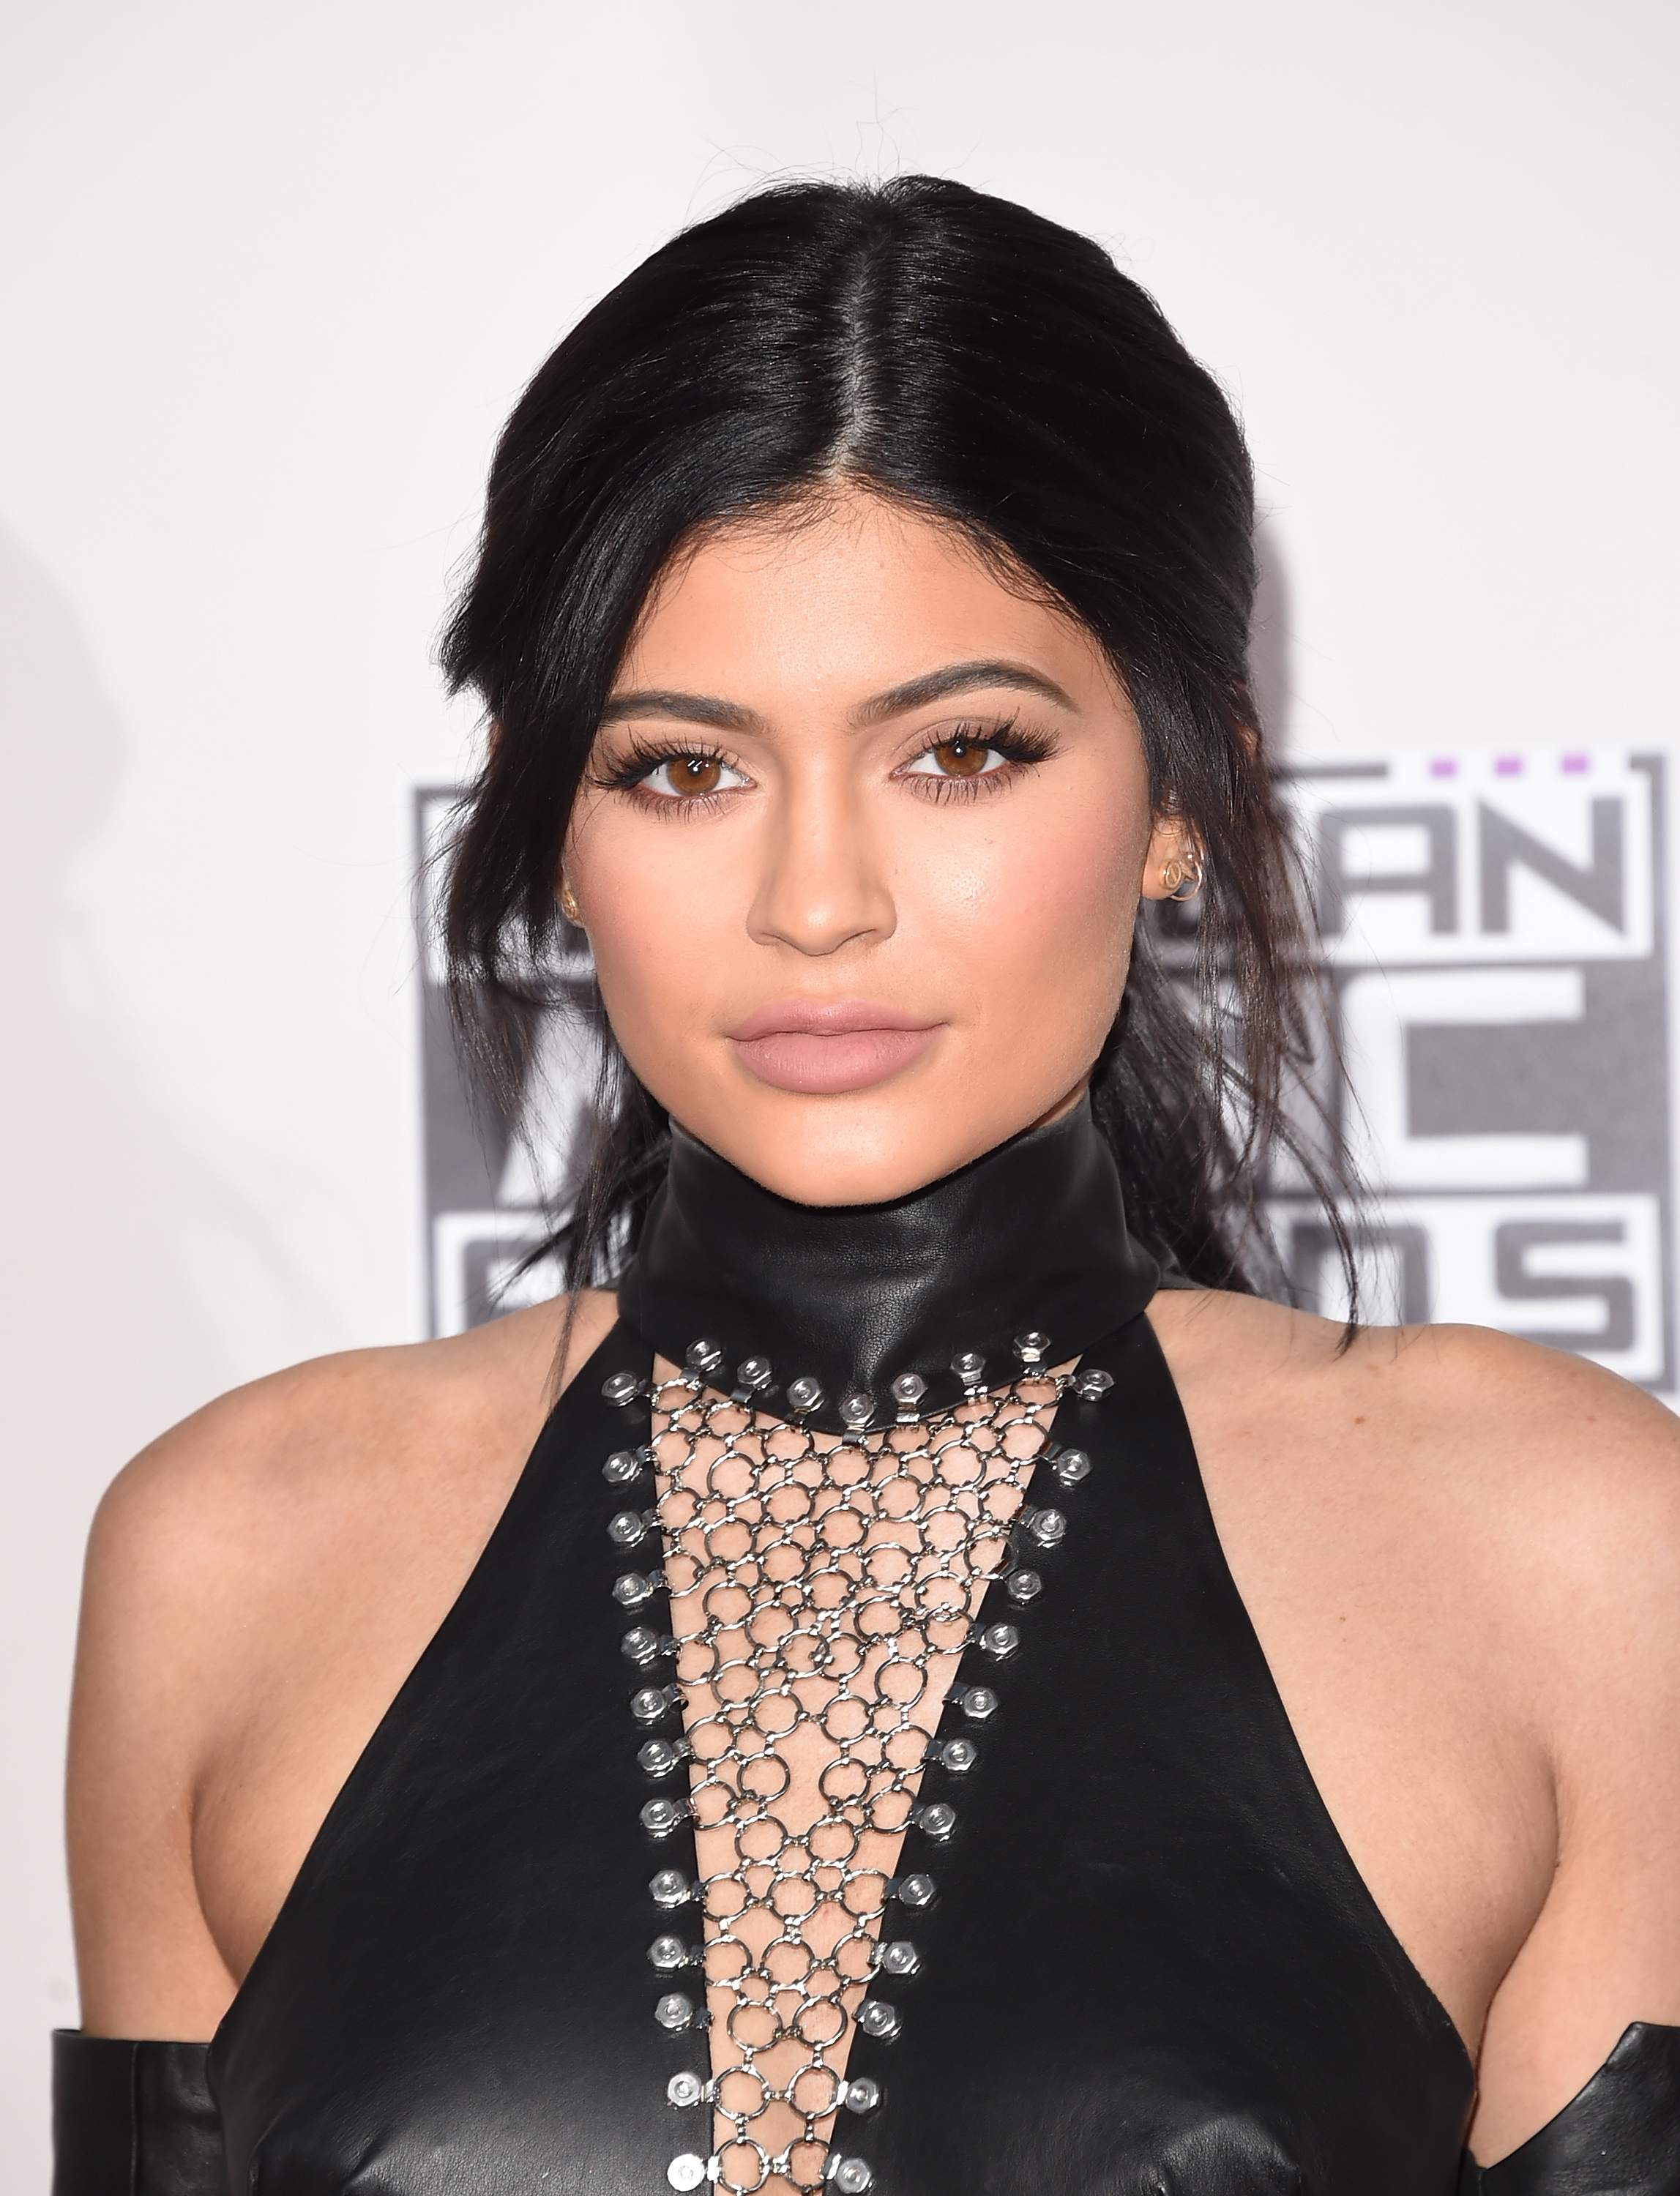 The 10 Best Kylie Jenner Lipstick Colors She Rocked In 2015 Photos